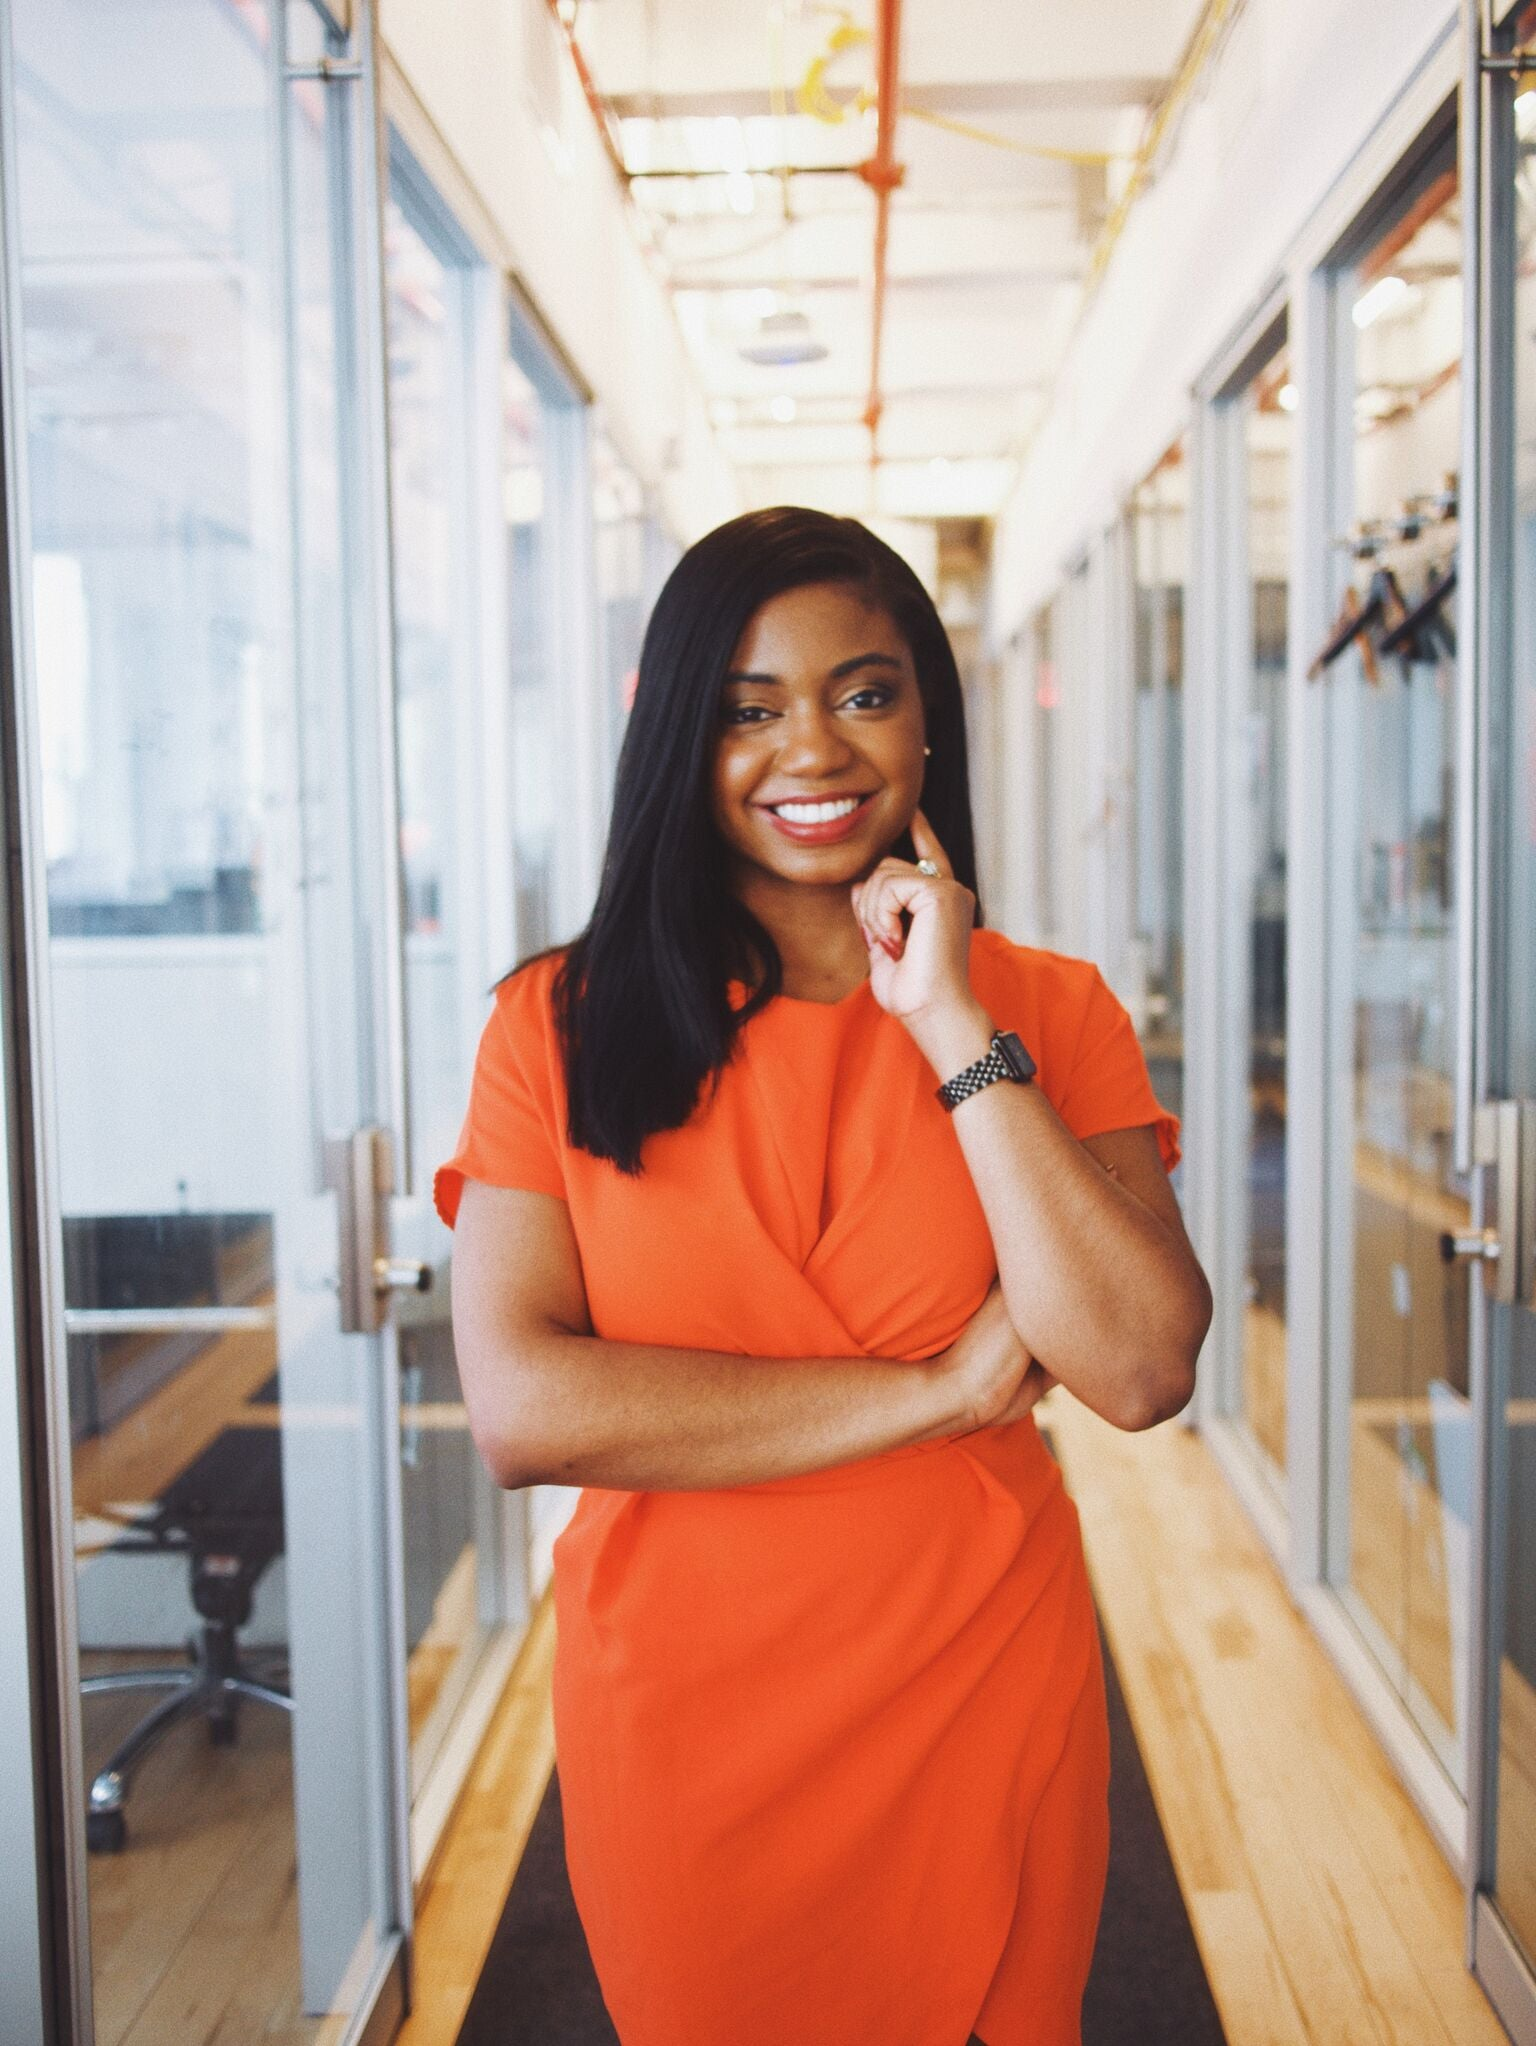 ESSENCE 50: 'Her Agenda' Founder Rhonesha Byng On Why The Key To Success For Black Women Is Each Other